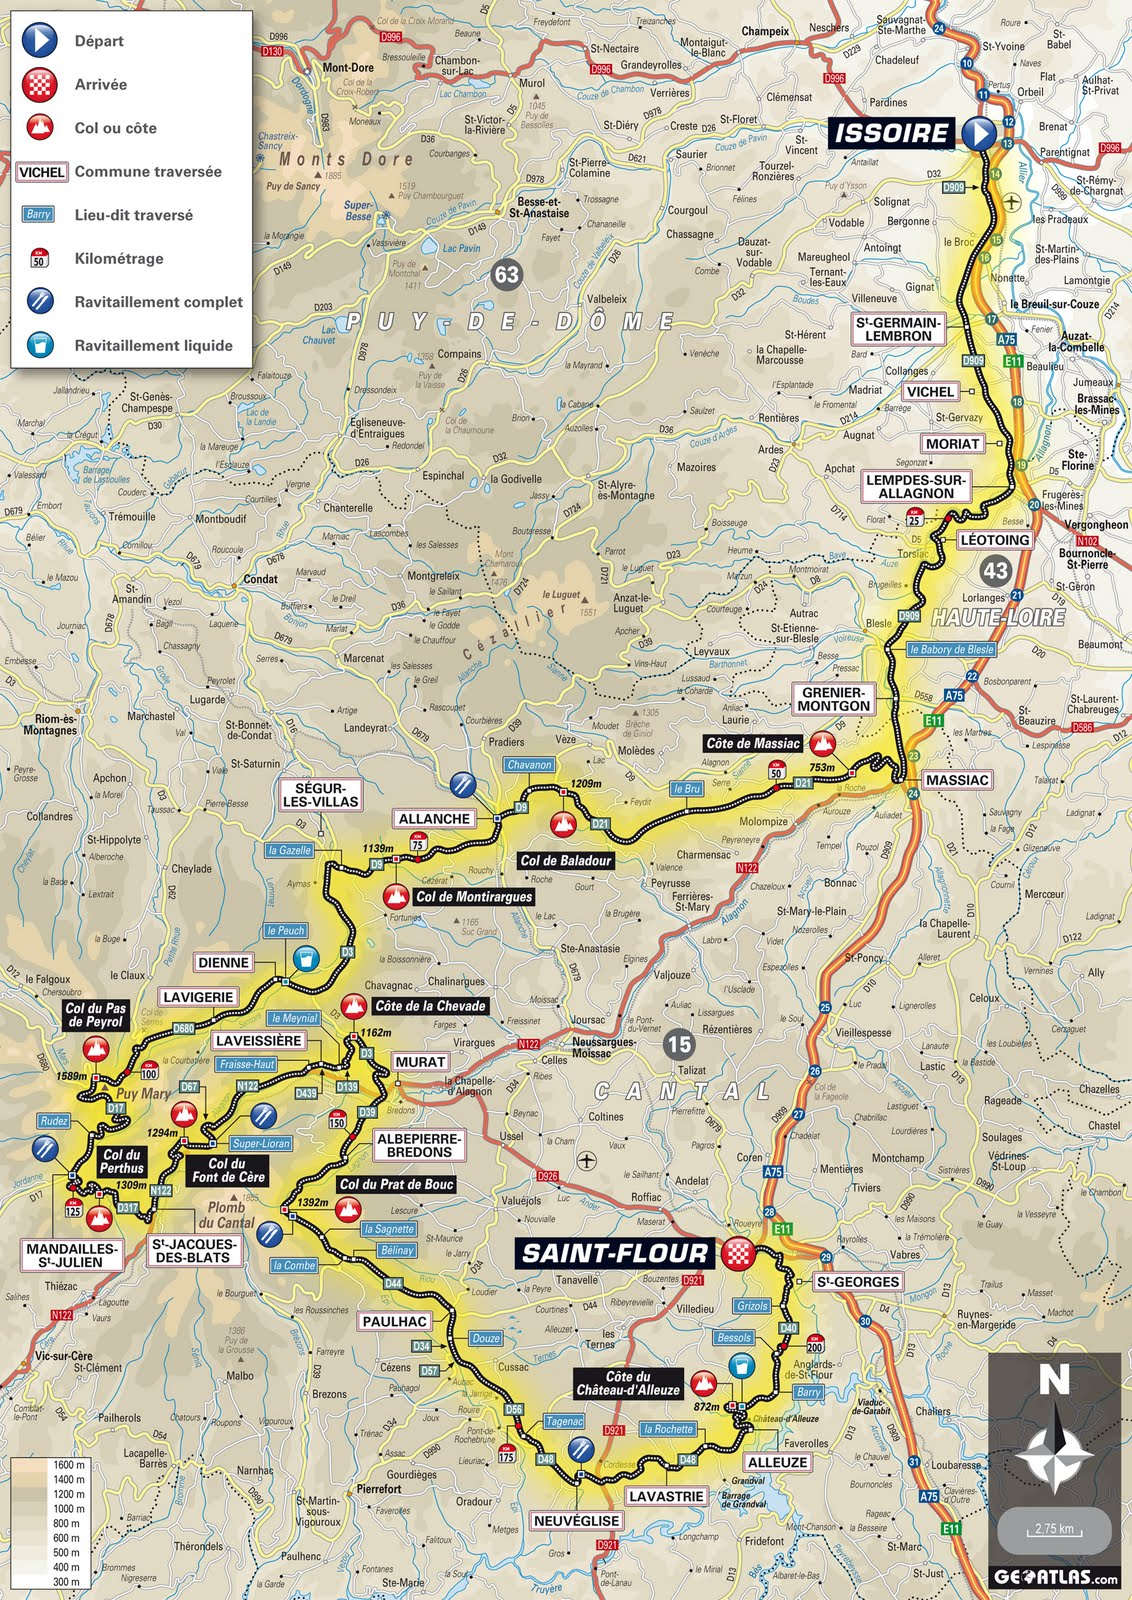 auvergne is a large administrative region of france and we would enter 3 of its 4 departmental areas starting in puy de dome 63 then haute loire 43 and